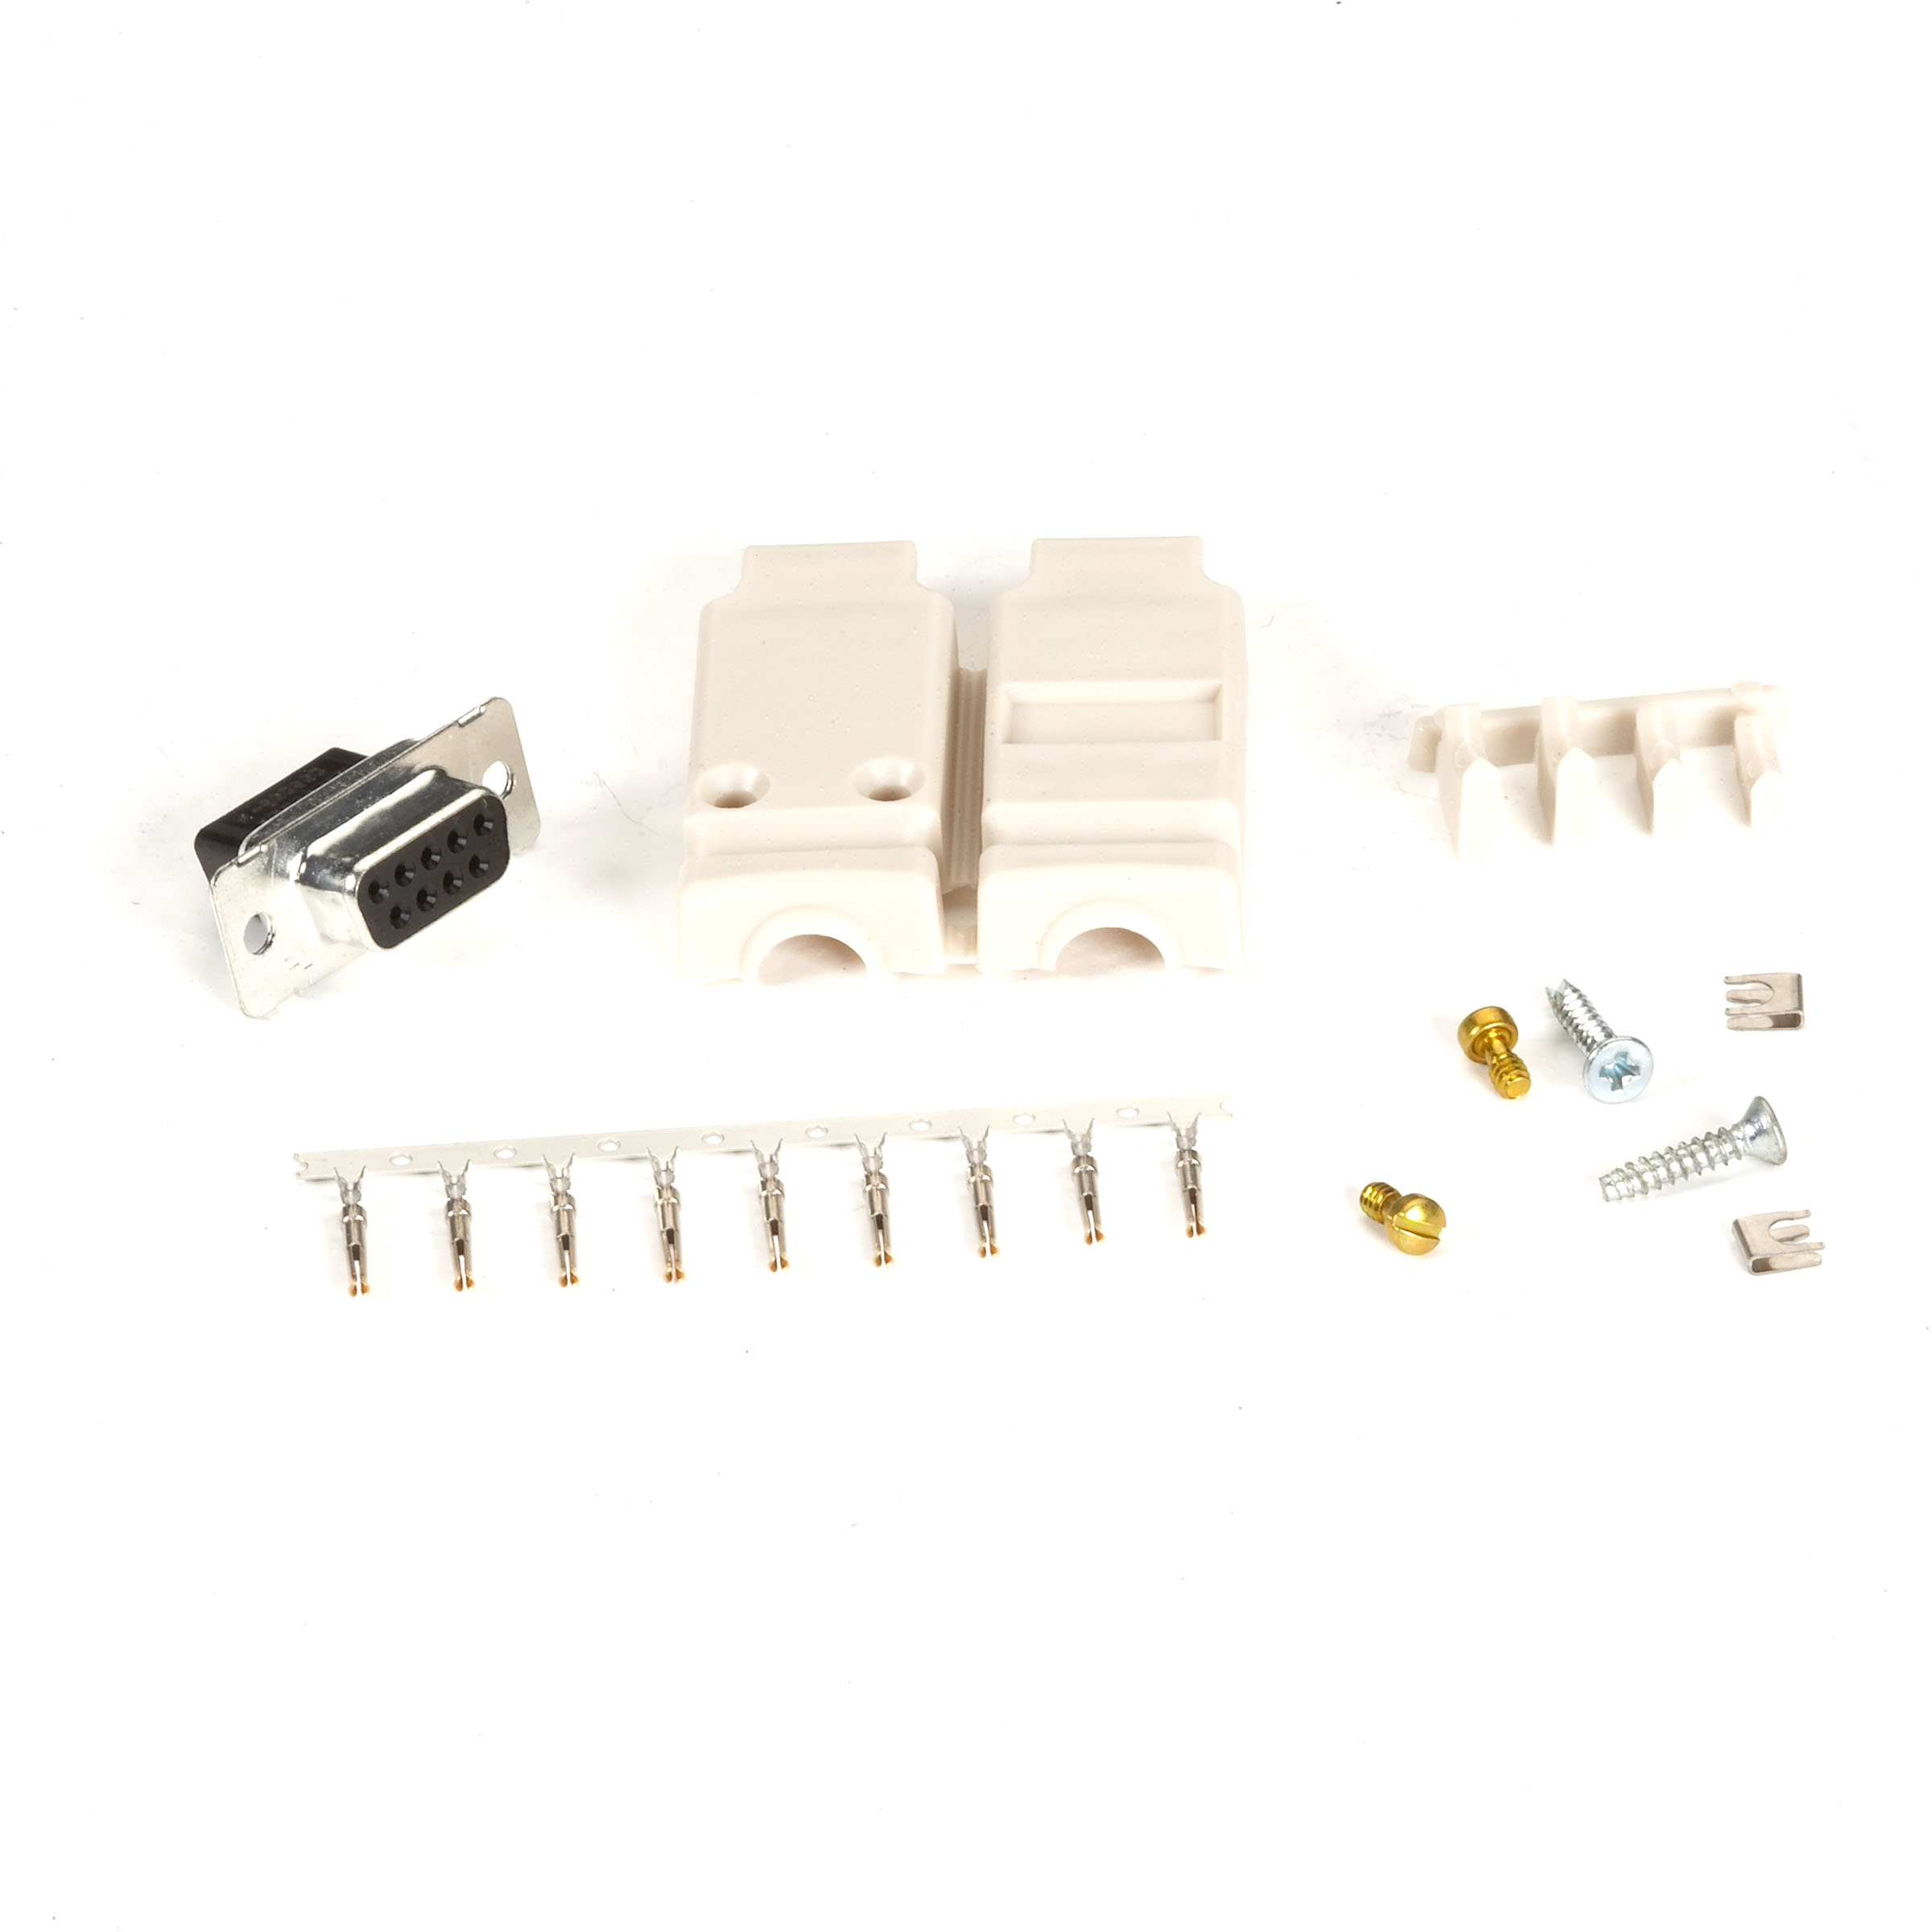 Db9 Female Connector Assembly Kit Black Box May Show Original Images And Post About Cat5e Wall Jack Wiring Diagram Fa049 Photo Similar Product